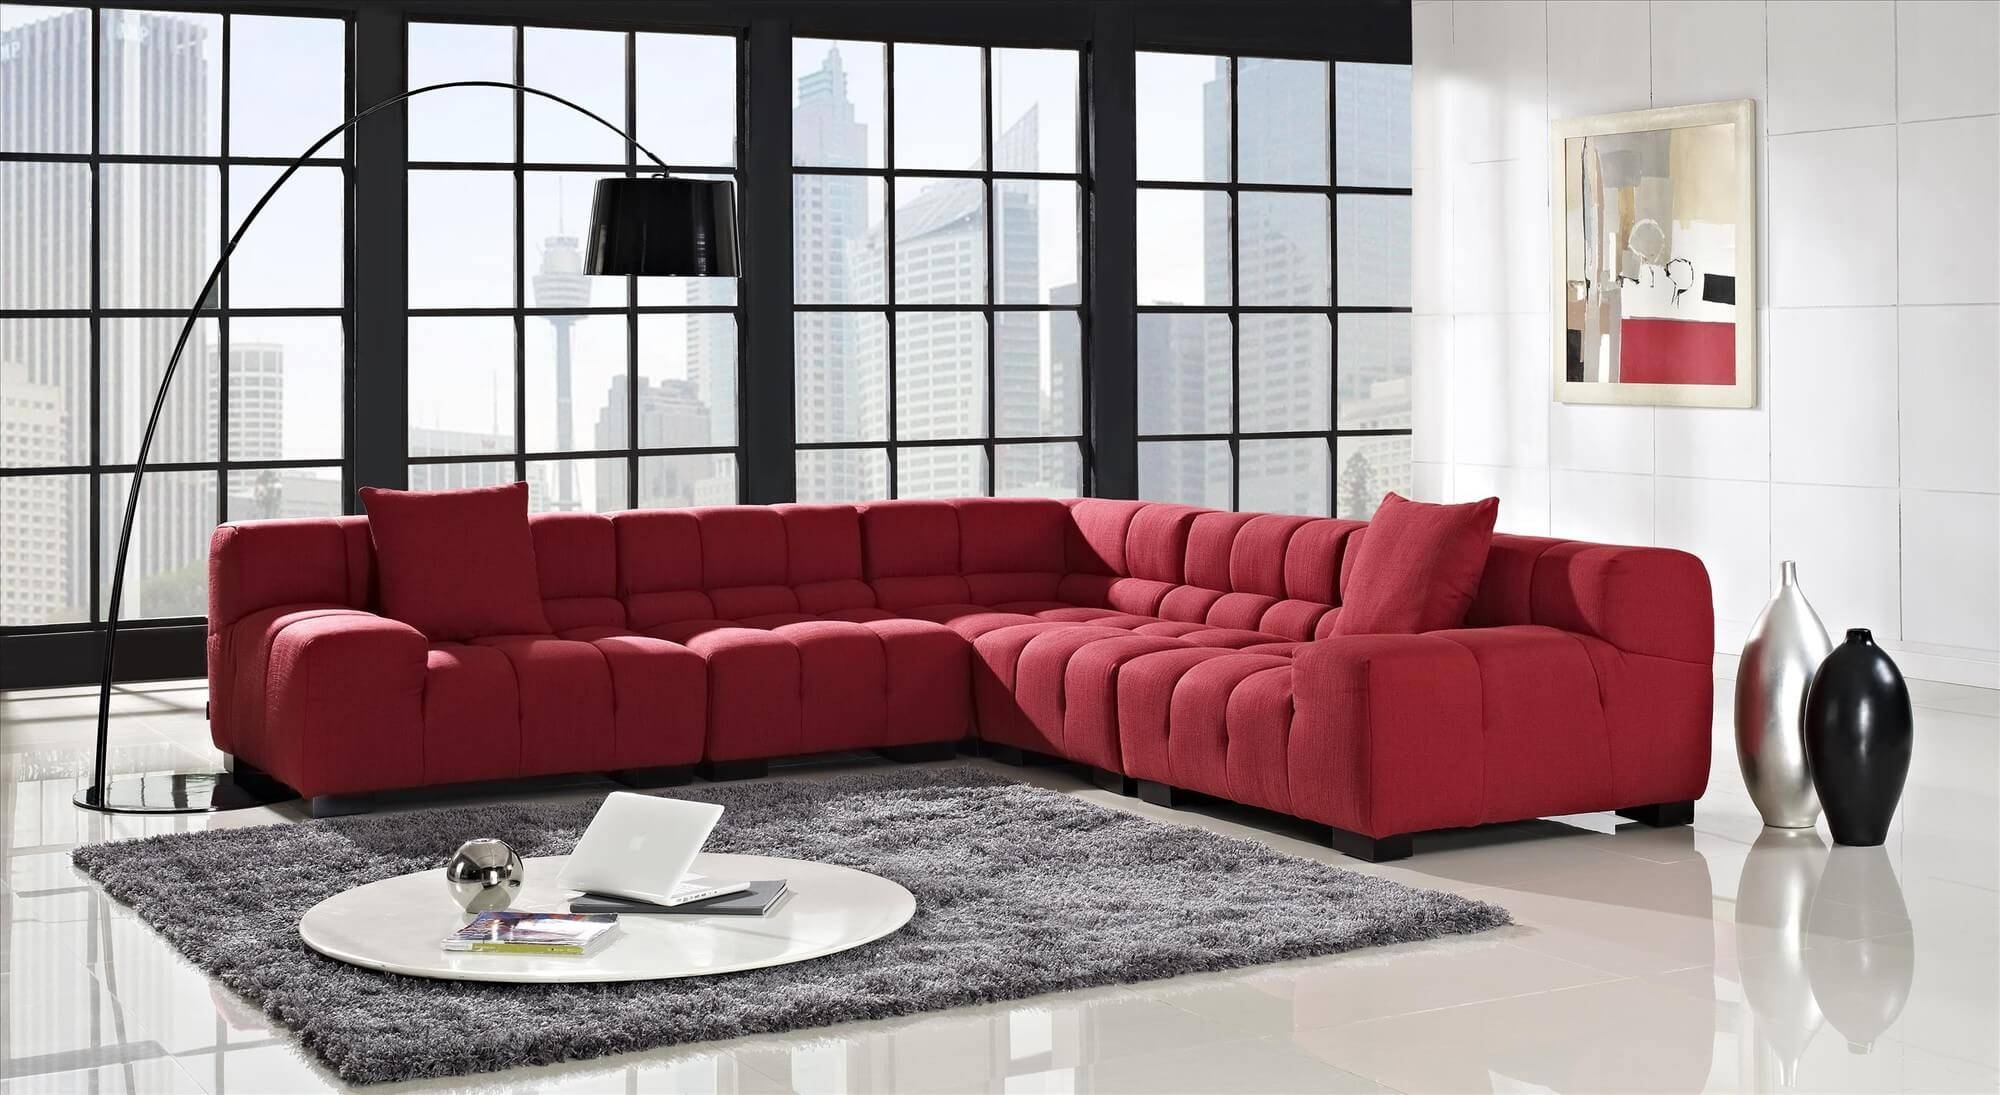 Sofa: Comfort And Style Is Evident In This Dynamic With Tufted Inside Red Sectional Sleeper Sofas (Photo 12 of 30)